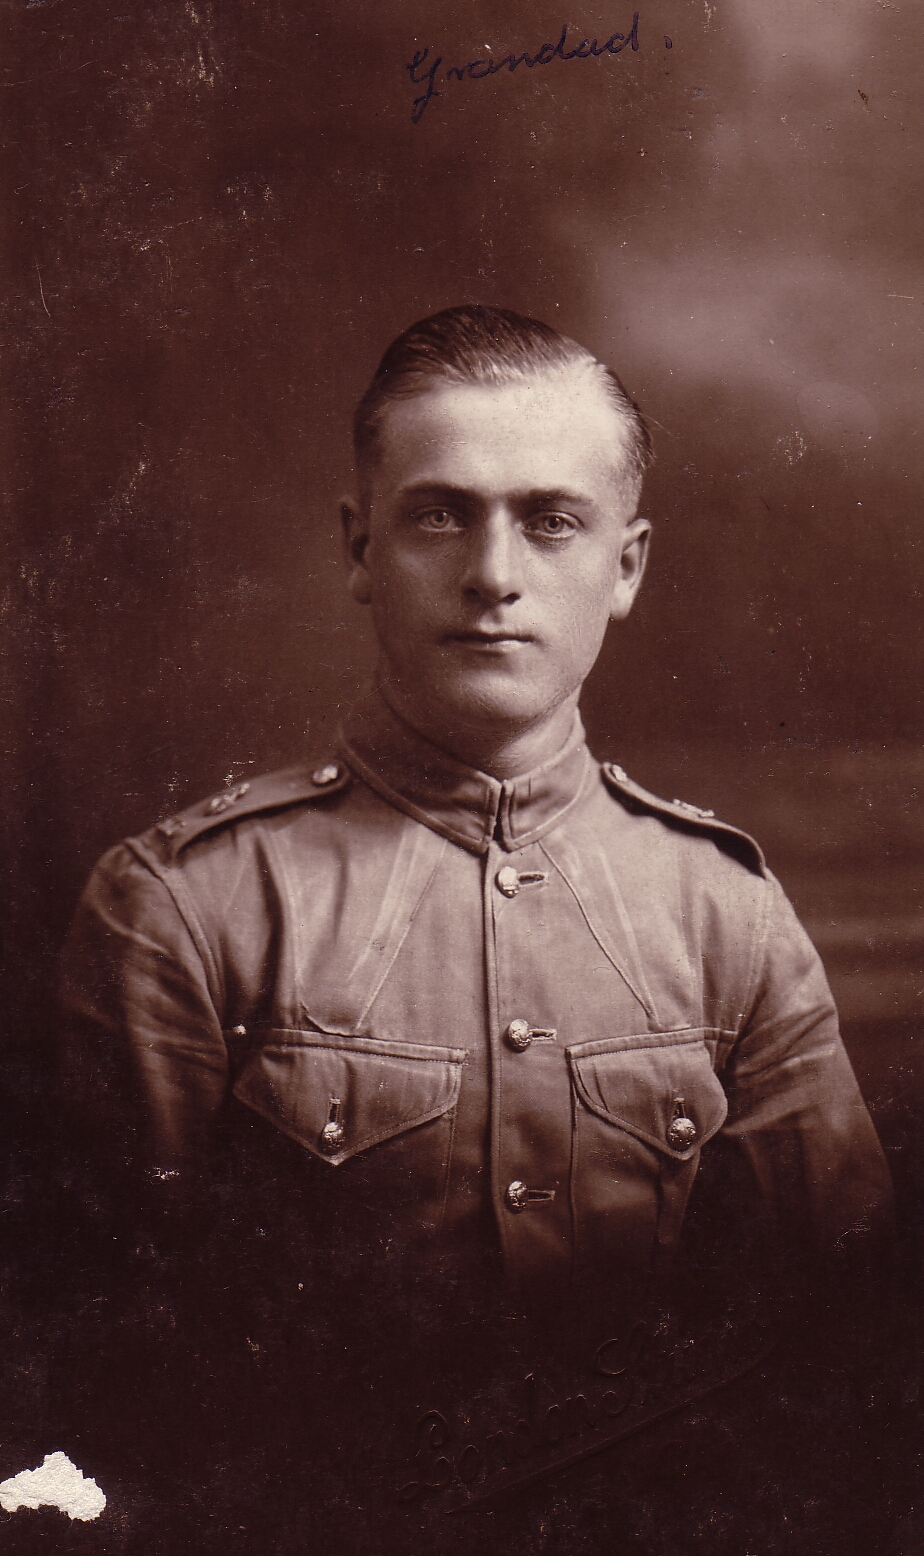 Studio Portrait Soldier, 11th May 1924